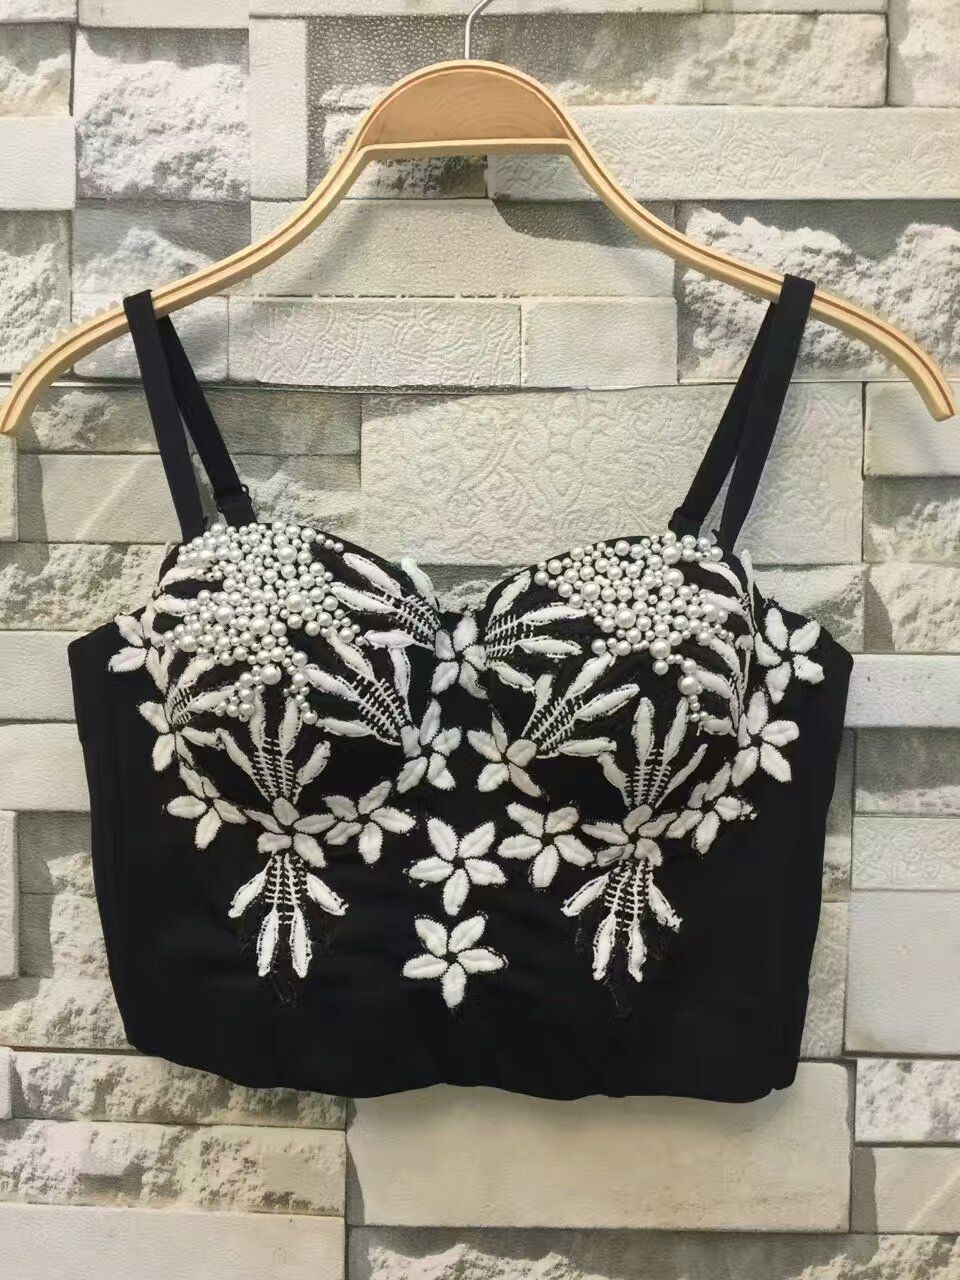 7dba1f8e1 New Fashion 2017 Spring Summer Sexy Embroidery Bead Pearls Push Up Bralette Women s  Bustier Bra Cropped